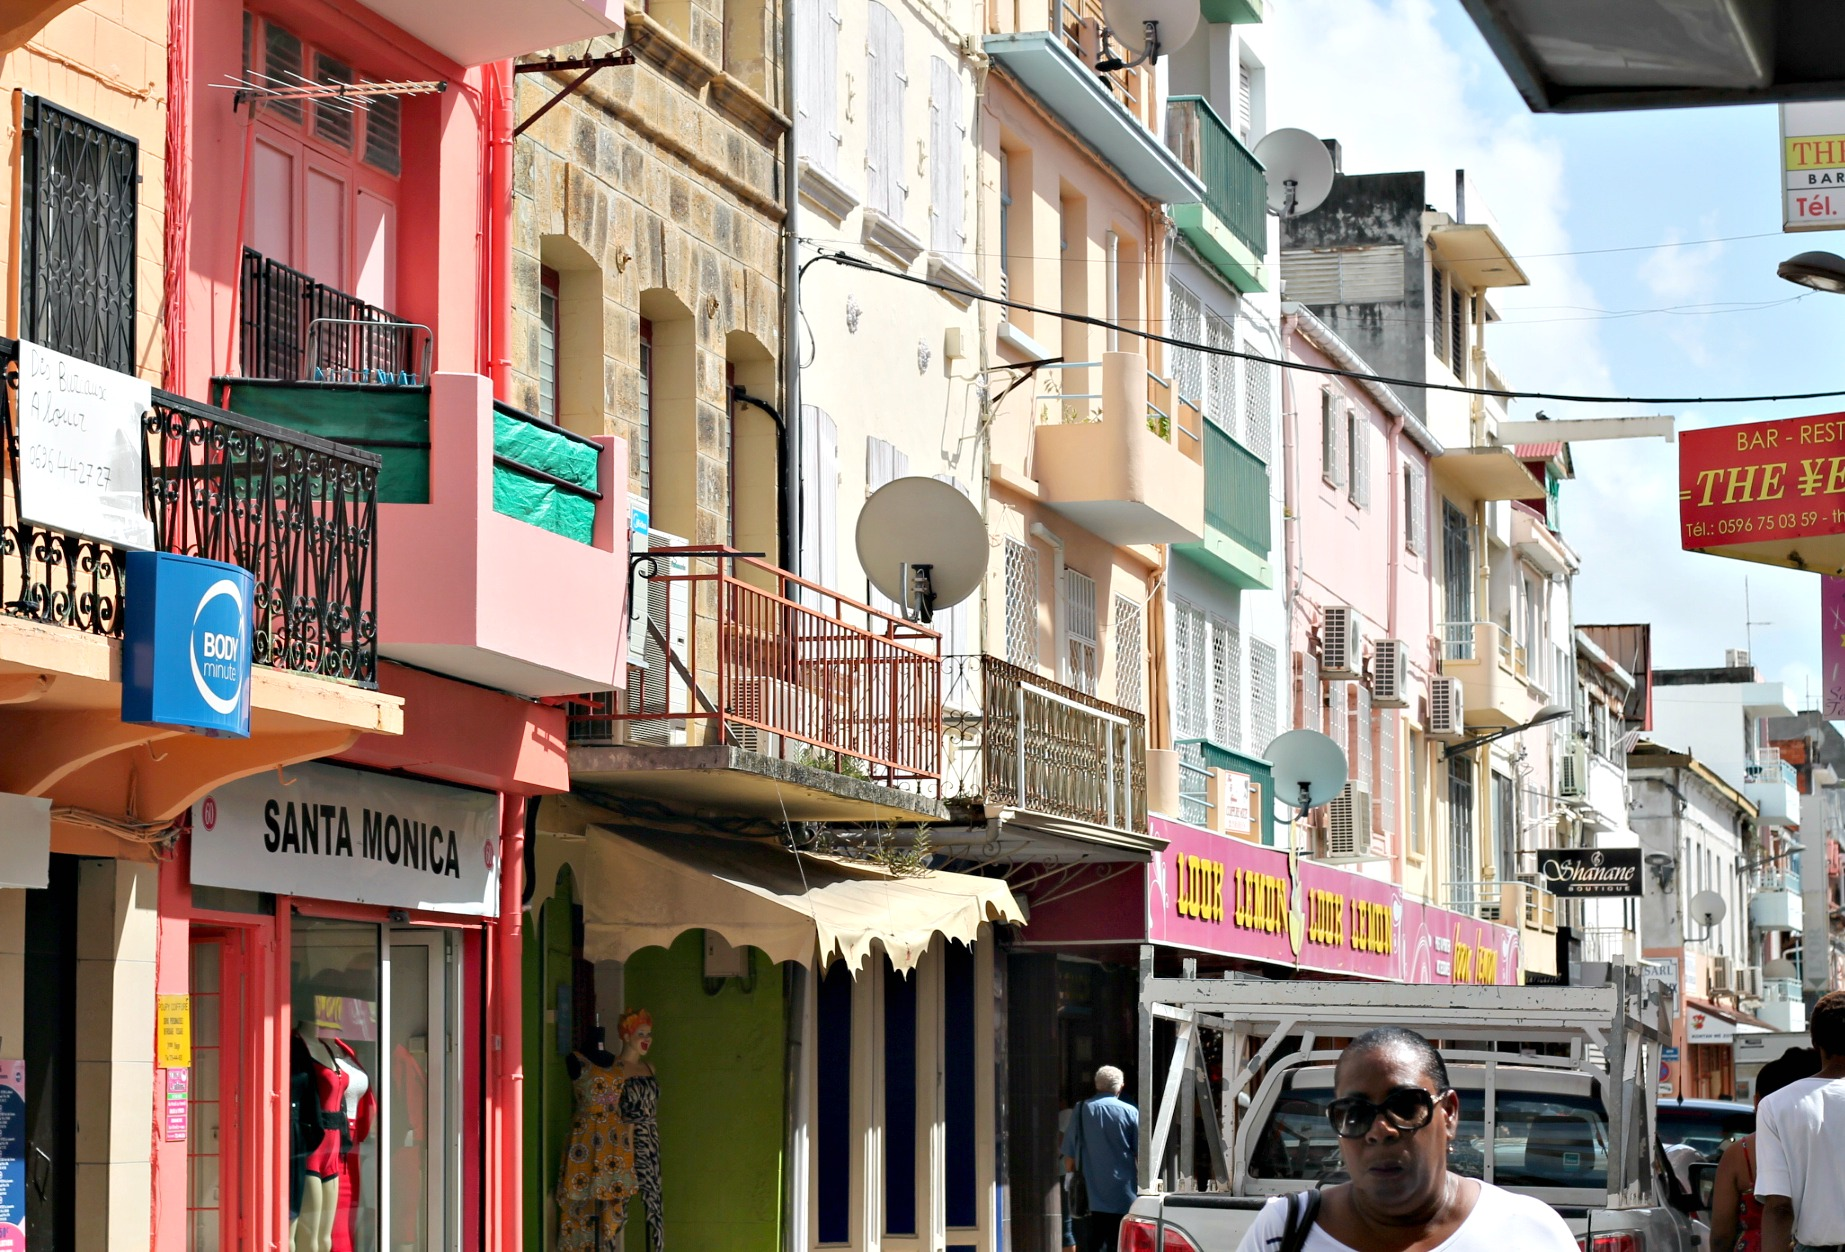 10 things to do in martinique lovebrownsugarlovebrownsugar for Cultural things to do in nyc